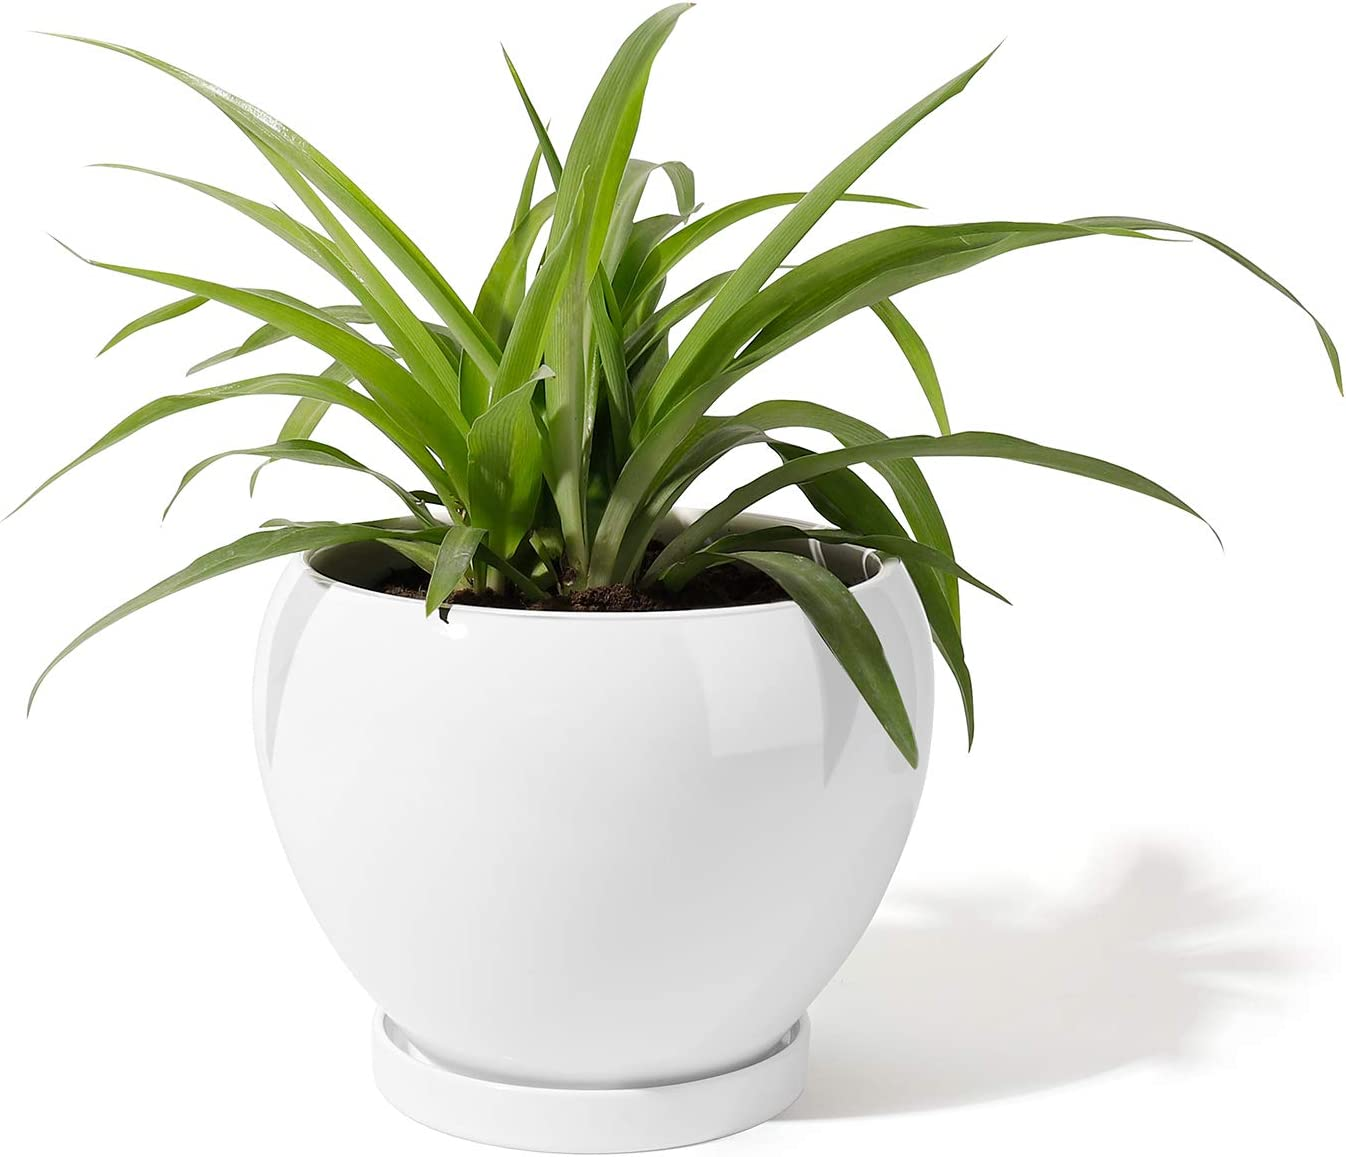 POTEY 052401 Ceramic Plant Pot Planter - Planter for Indoor Plants Flower Succulent with Drainage Hole & Saucer (Large - 6.7 Inches, White)